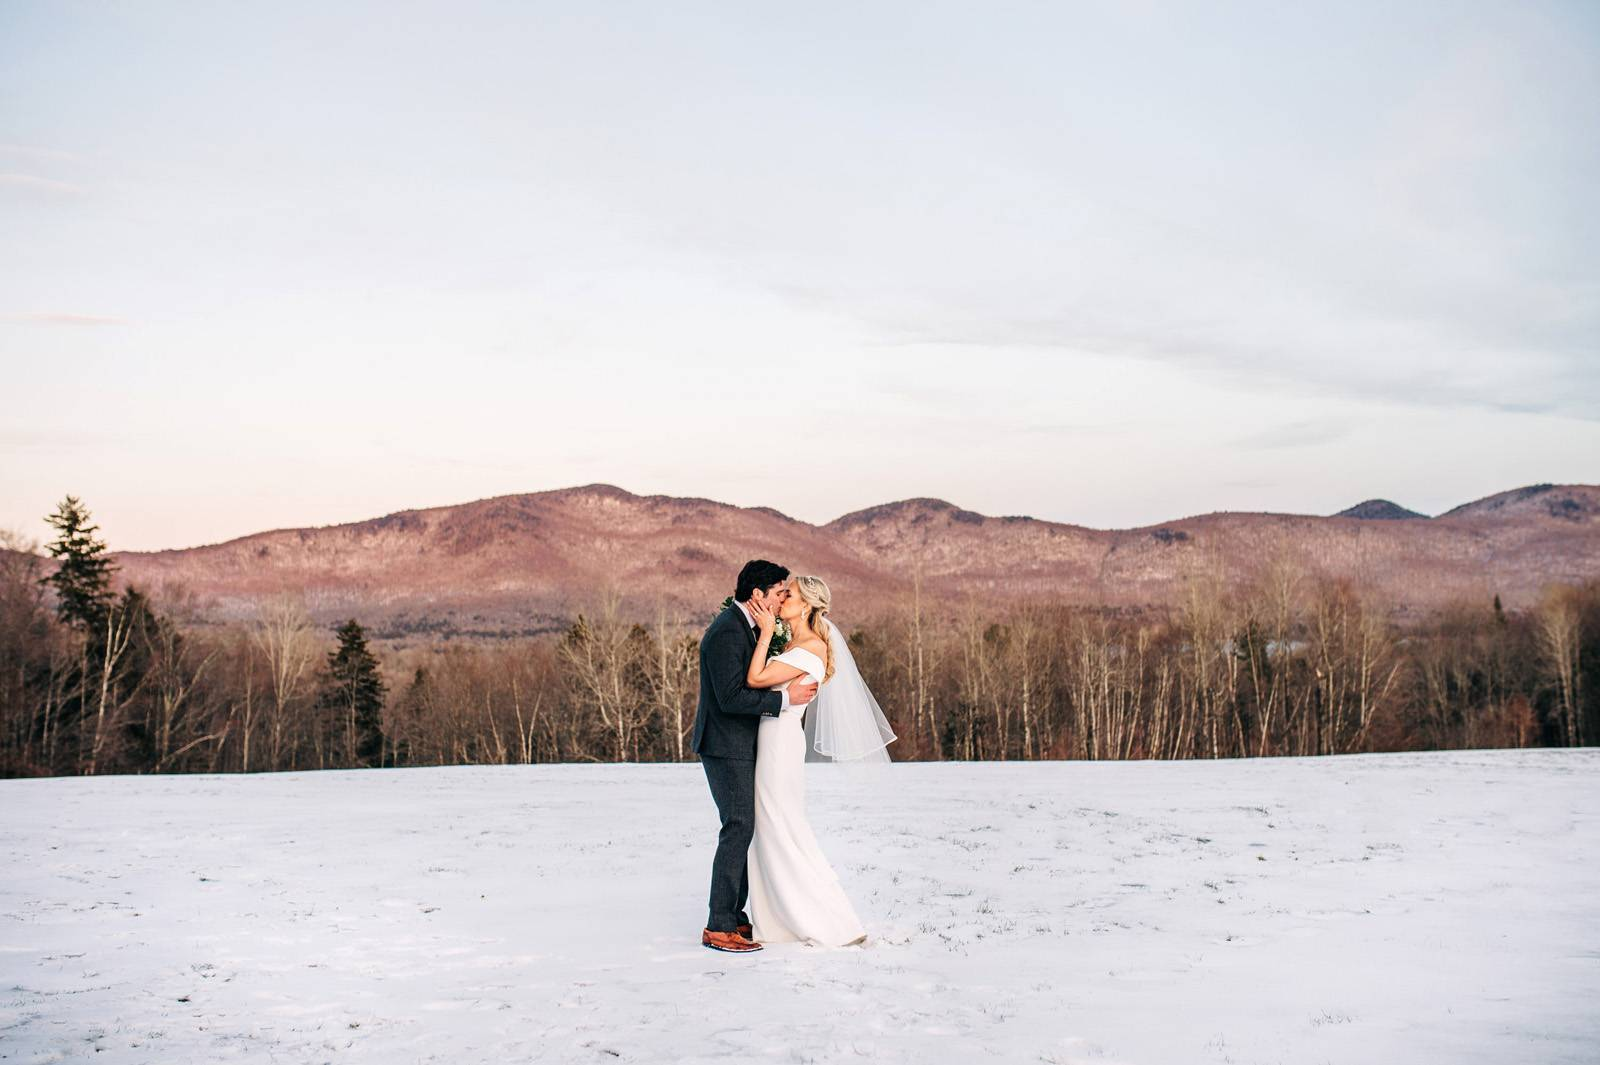 Bride and groom kissing in the snow with mountain backdrop